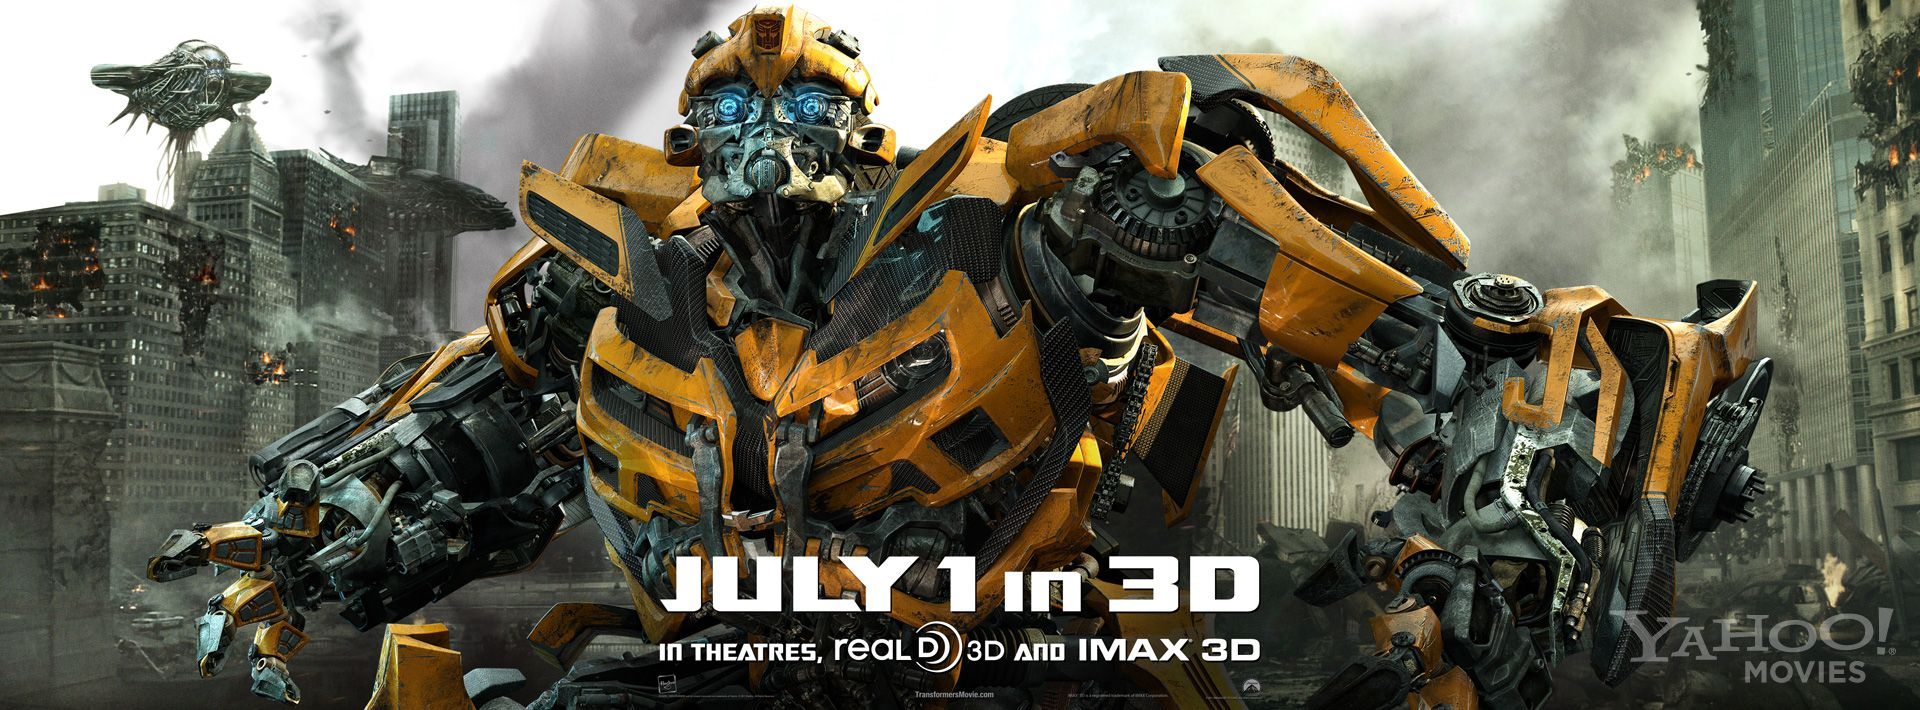 transformers 3 poster shockwave | collider